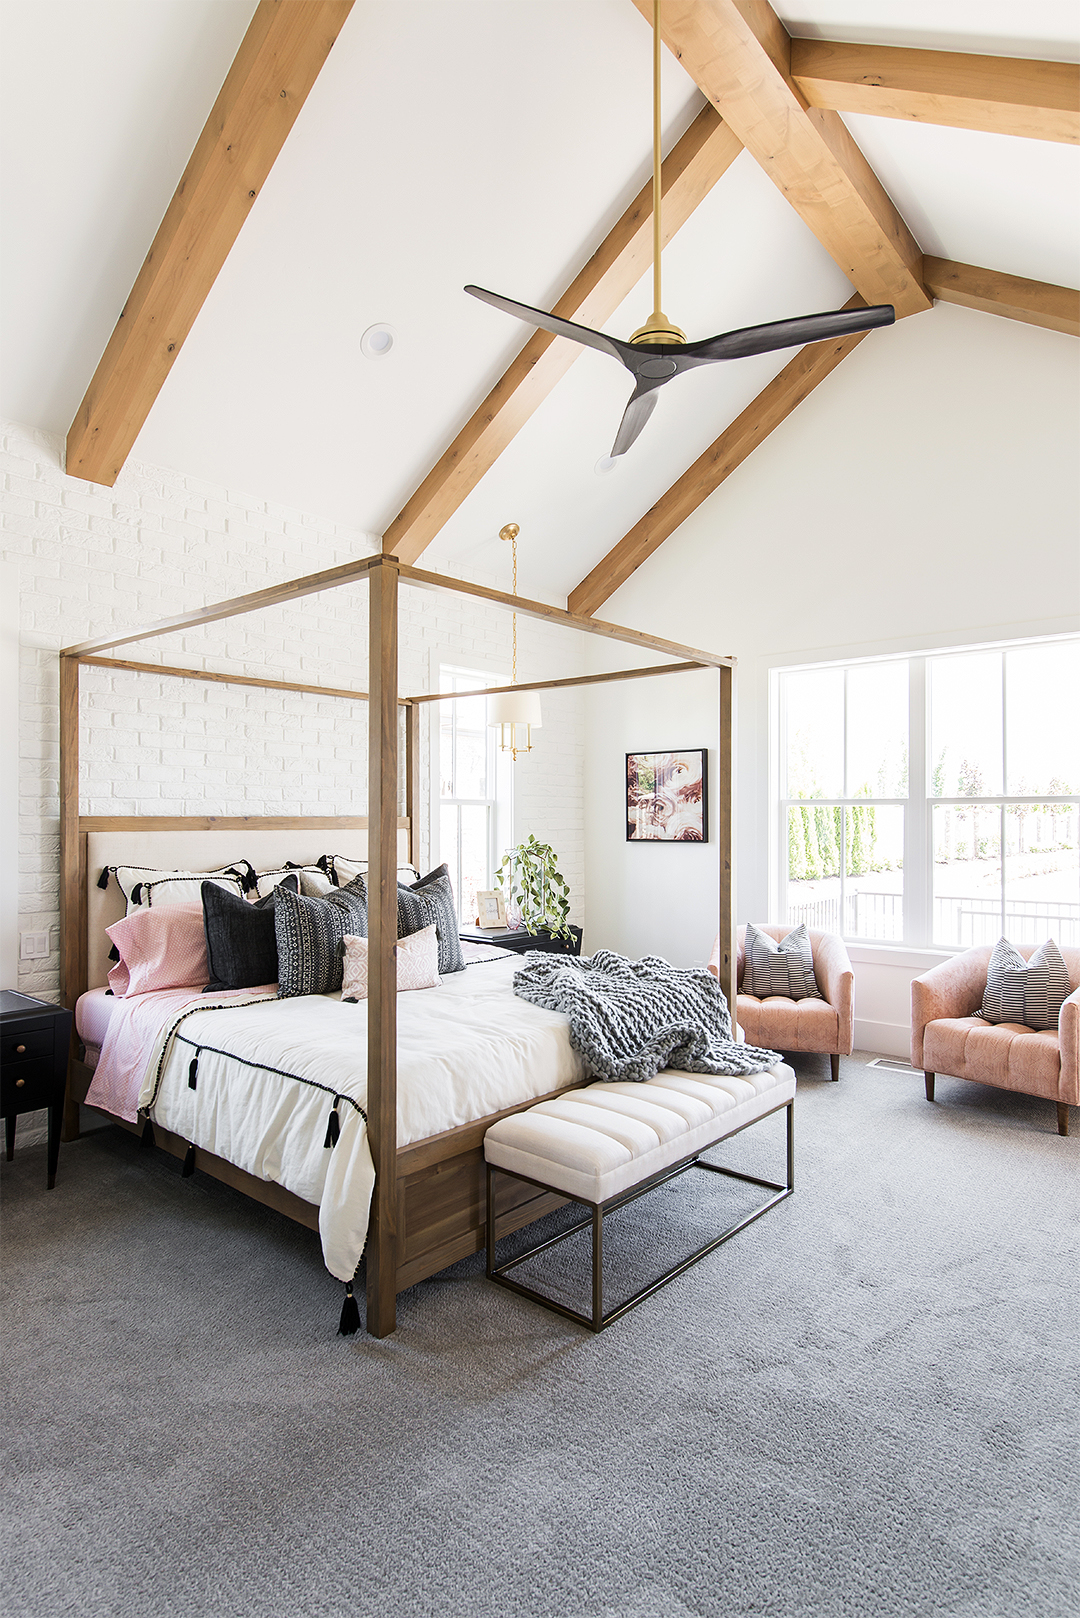 master bedroom with vaulted ceilings and 4 poster bed